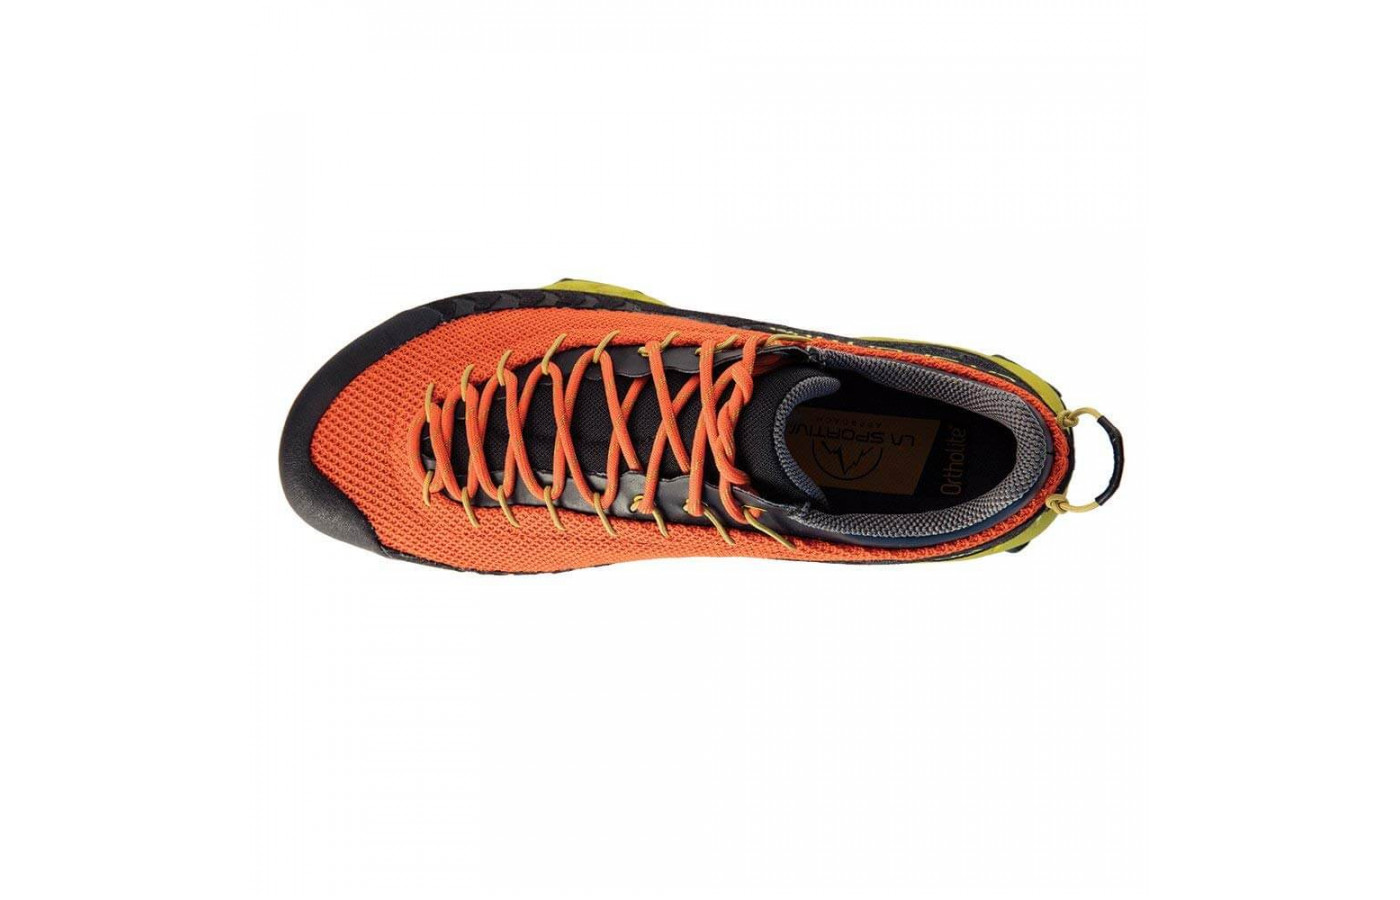 La Sportiva TX3 GTX Hiking Shoe top view spicey orange mens